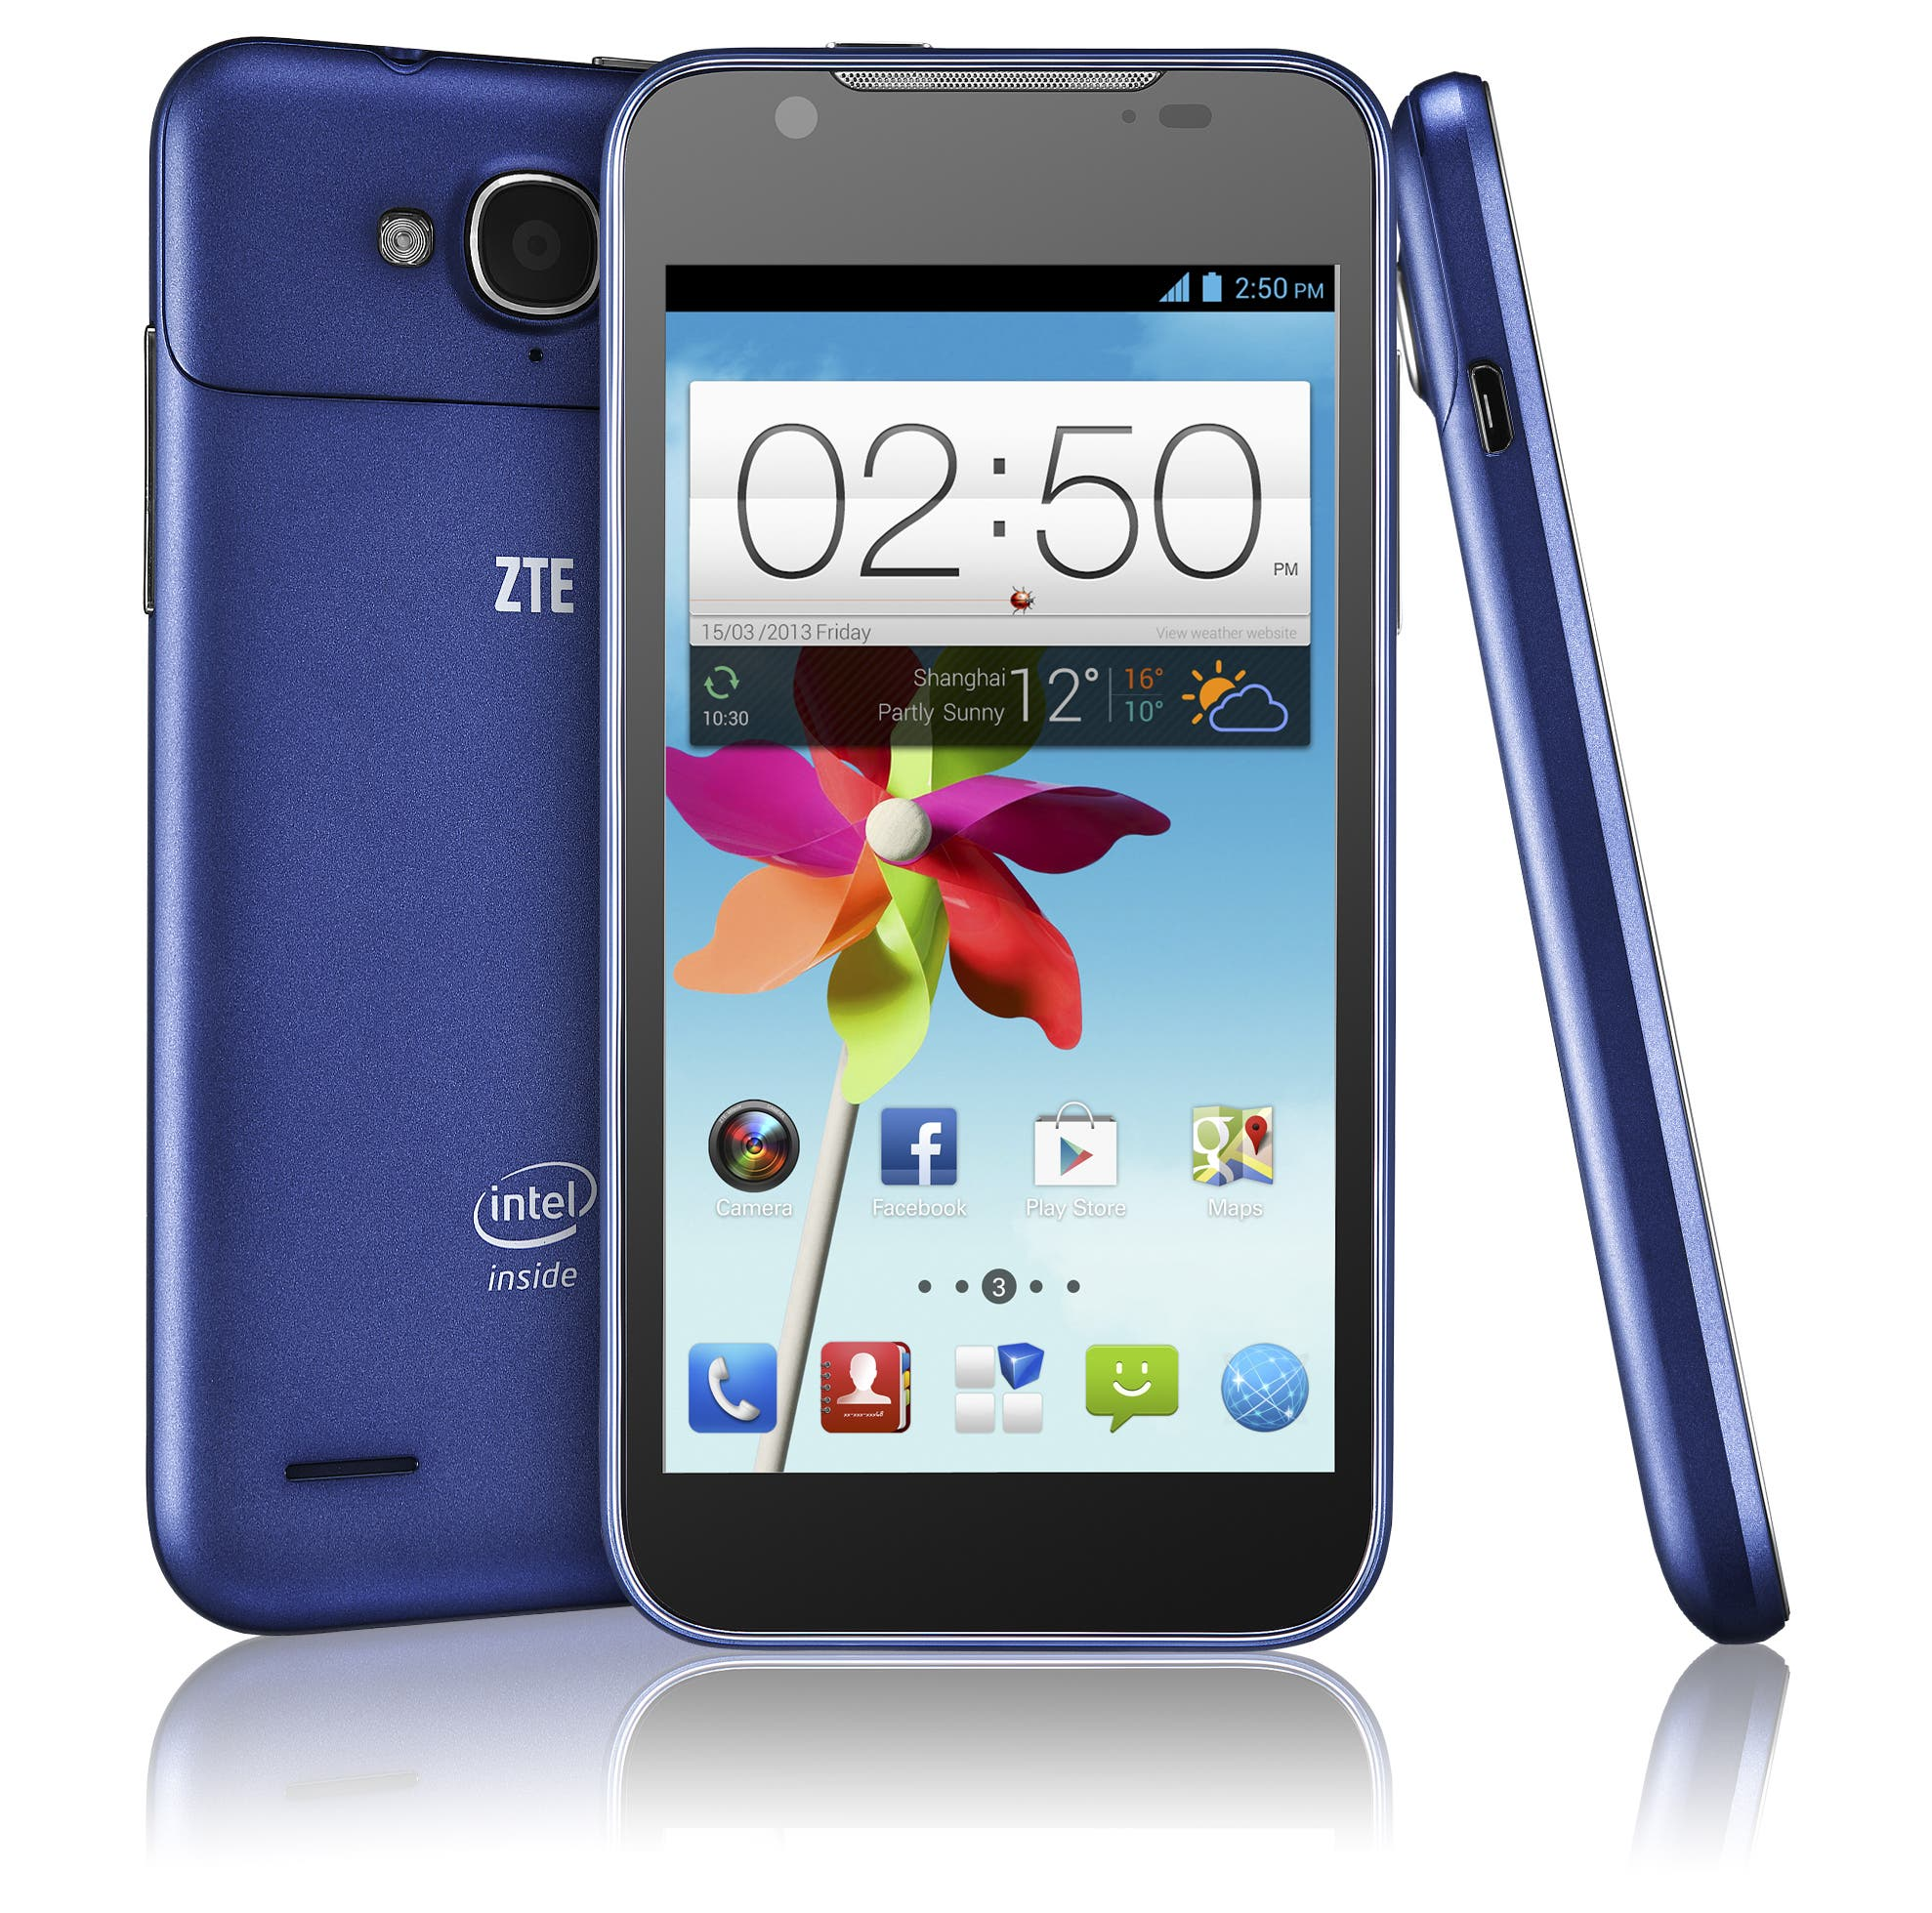 ZTE Grand X2 In Android-Smartphone mit Intel Atom Dual-Core-CPU vorgestellt